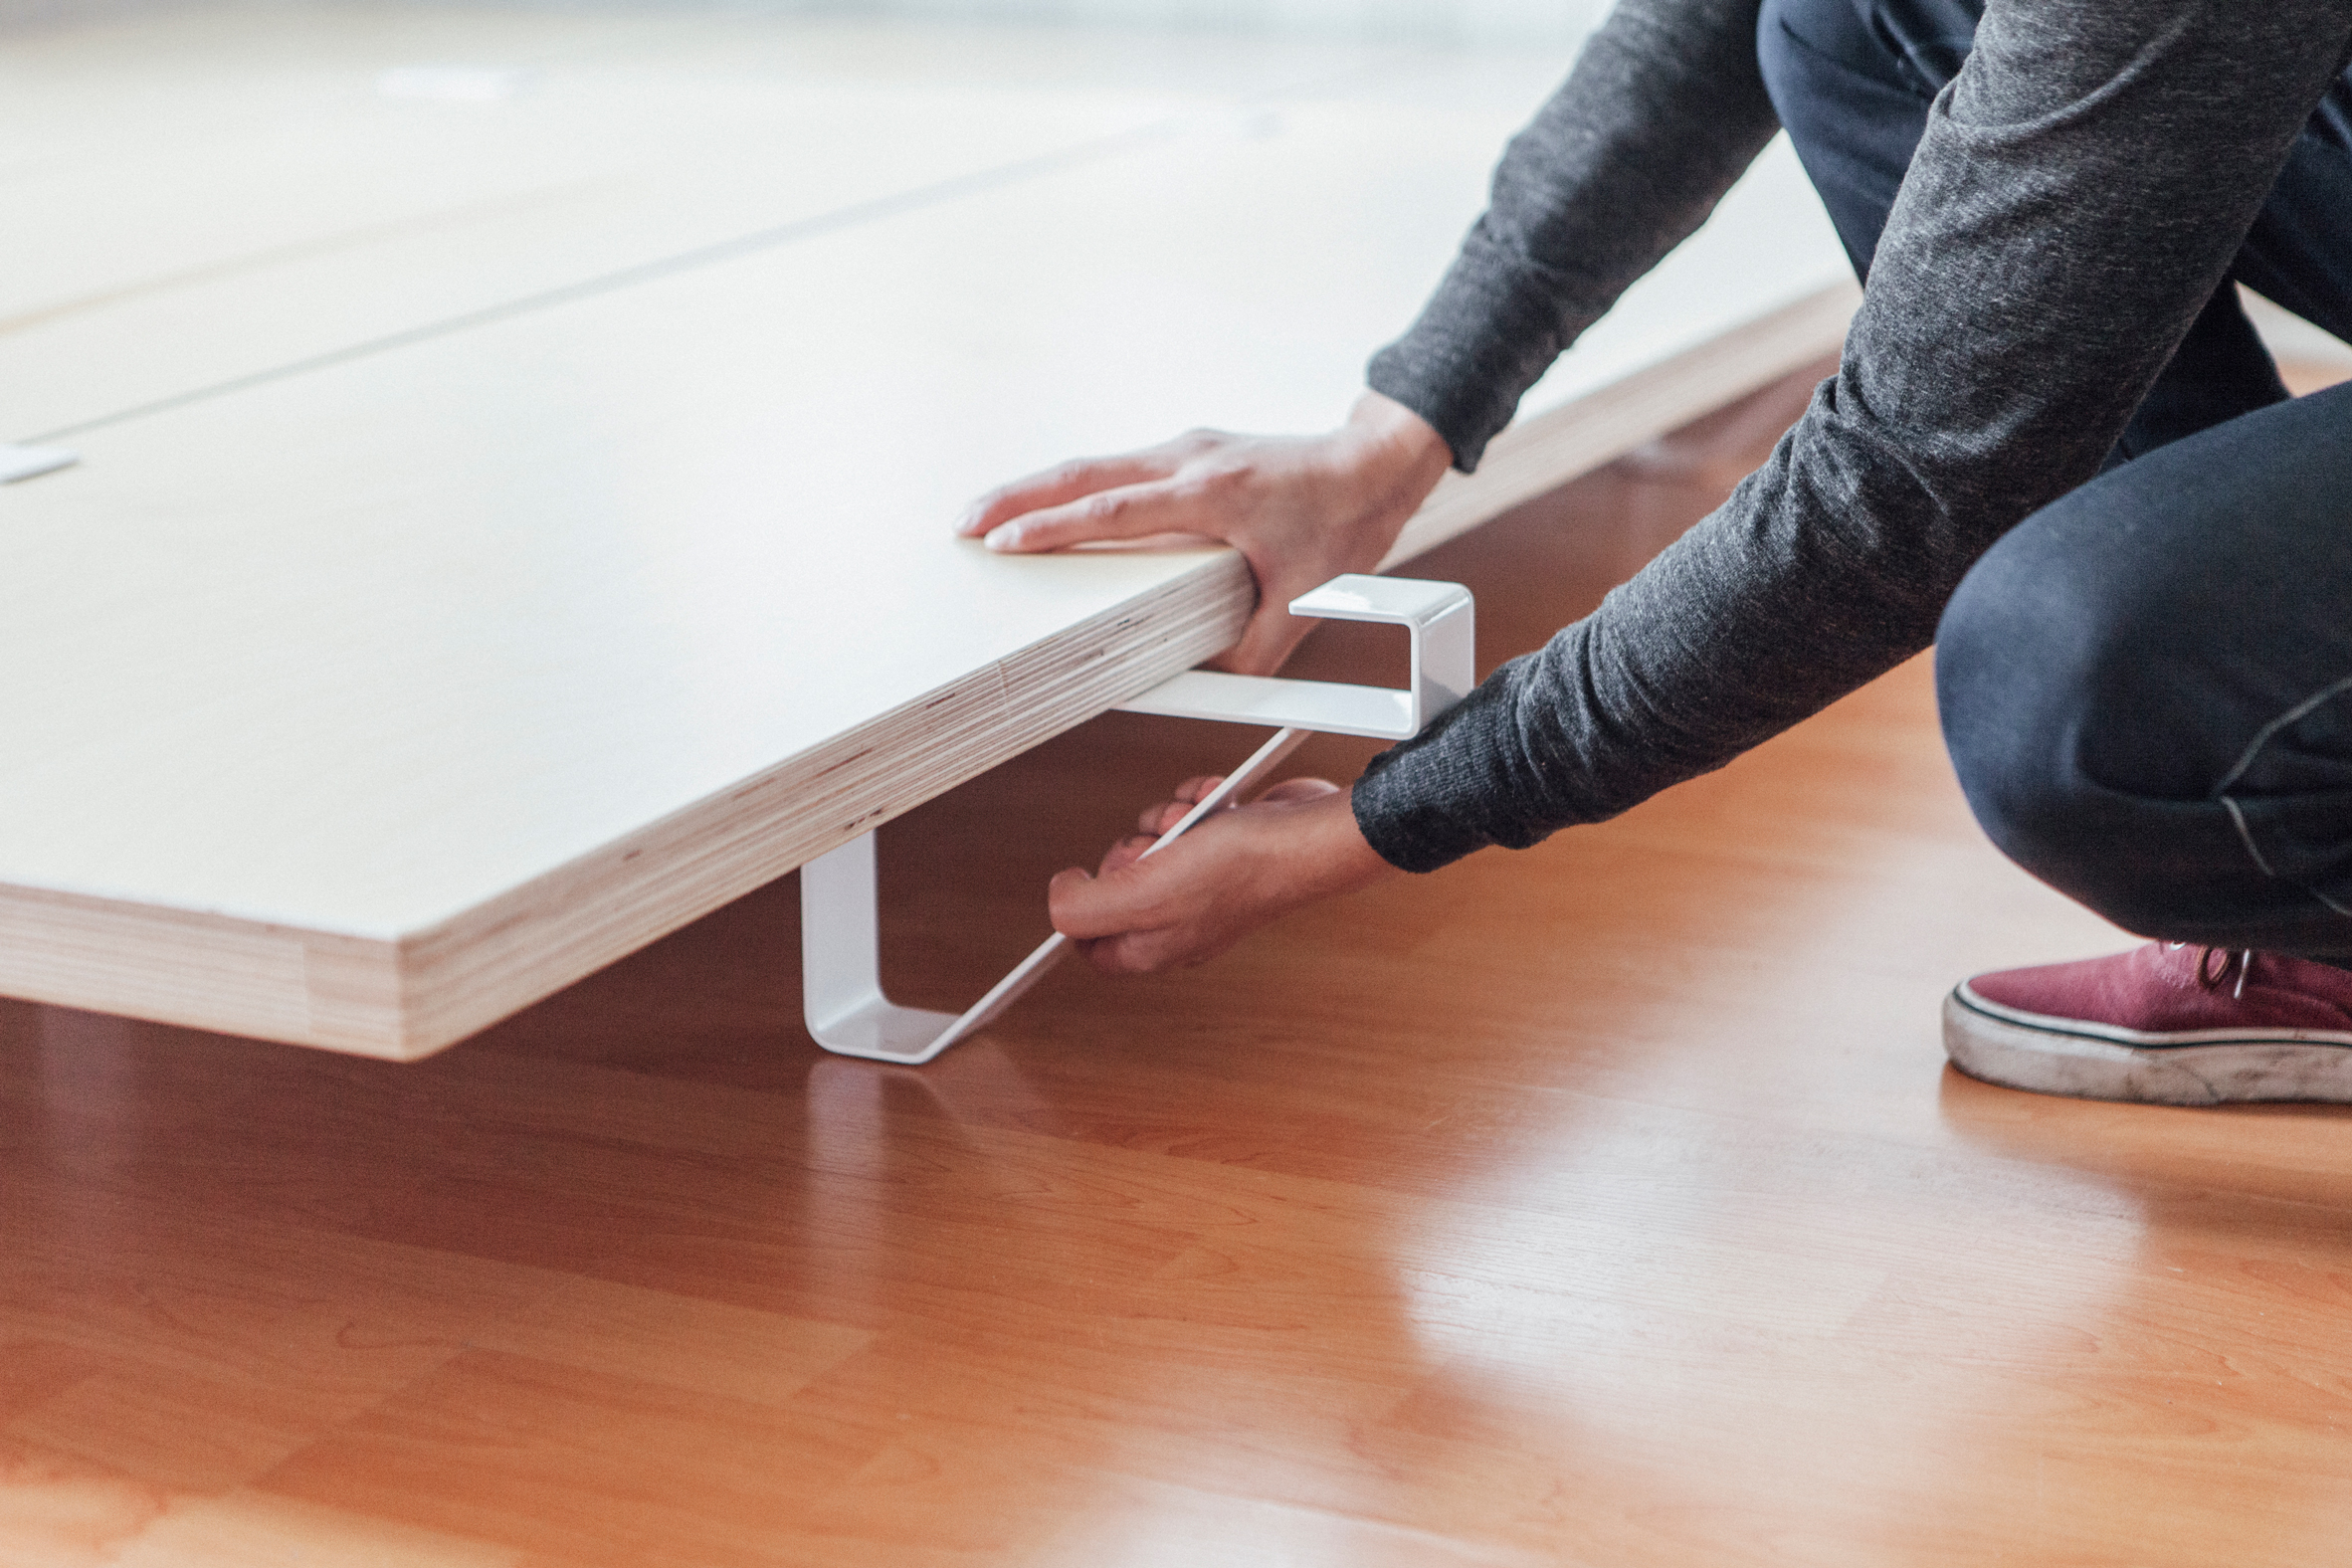 Flatpack startup Floyd produces easy-to-assemble furniture for millenials